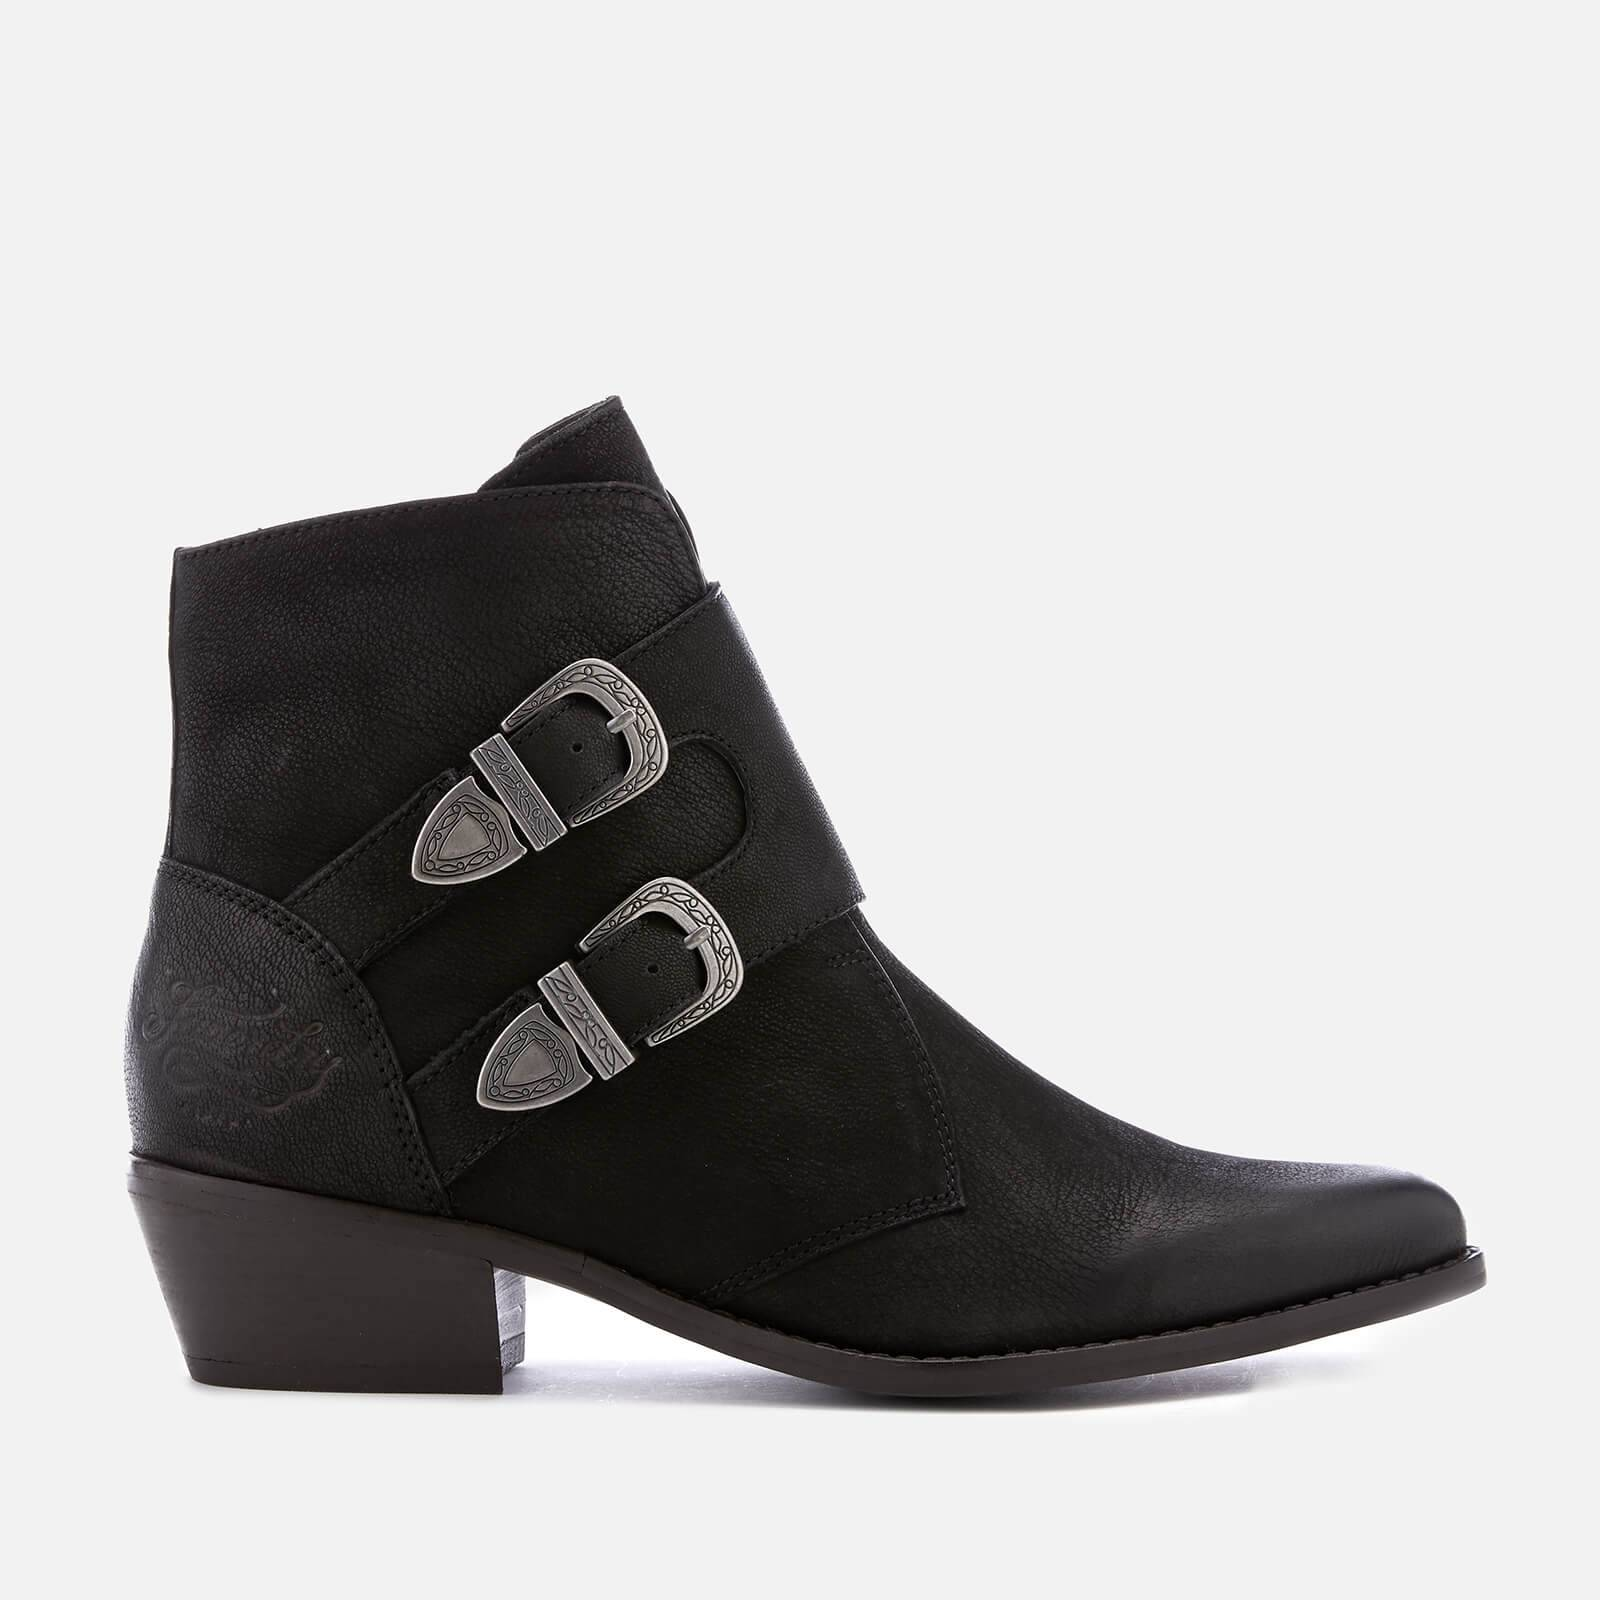 Superdry Women's Rodeo Monk Heeled Ankle Boots - Black - UK 8 - Black